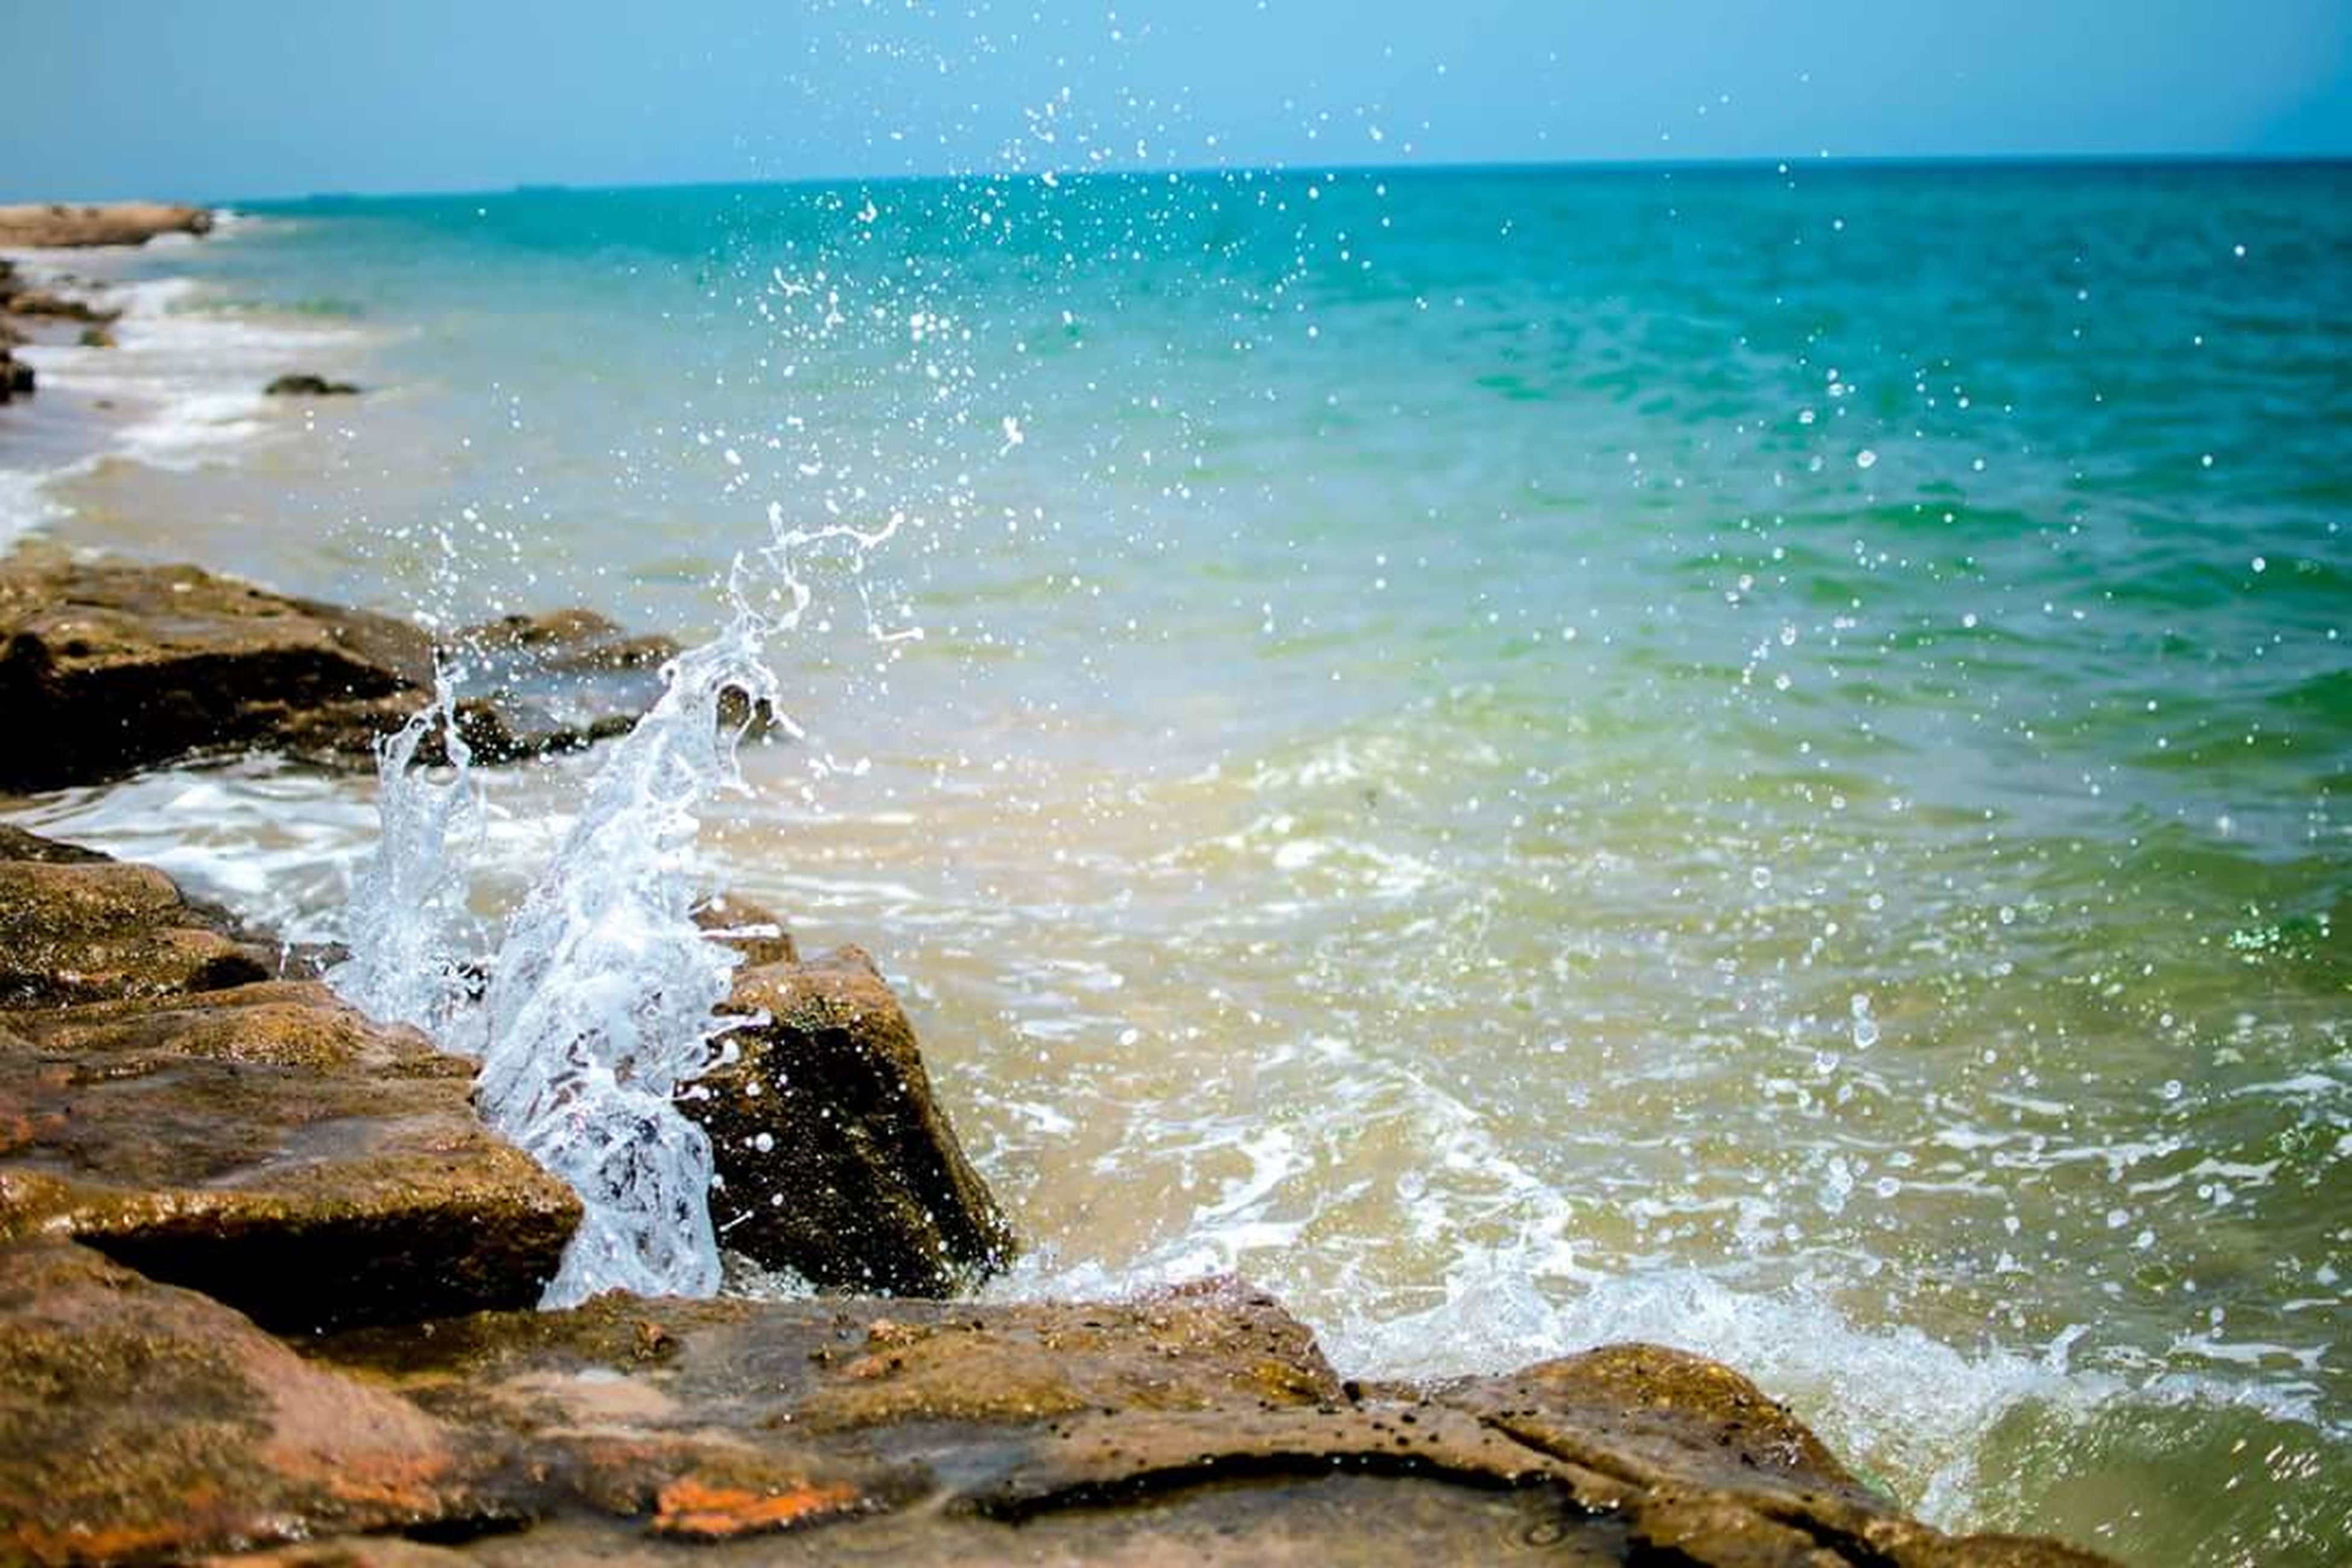 water, sea, horizon over water, wave, scenics, beach, surf, beauty in nature, shore, tranquil scene, tranquility, nature, rock - object, motion, idyllic, blue, rock formation, coastline, splashing, sky